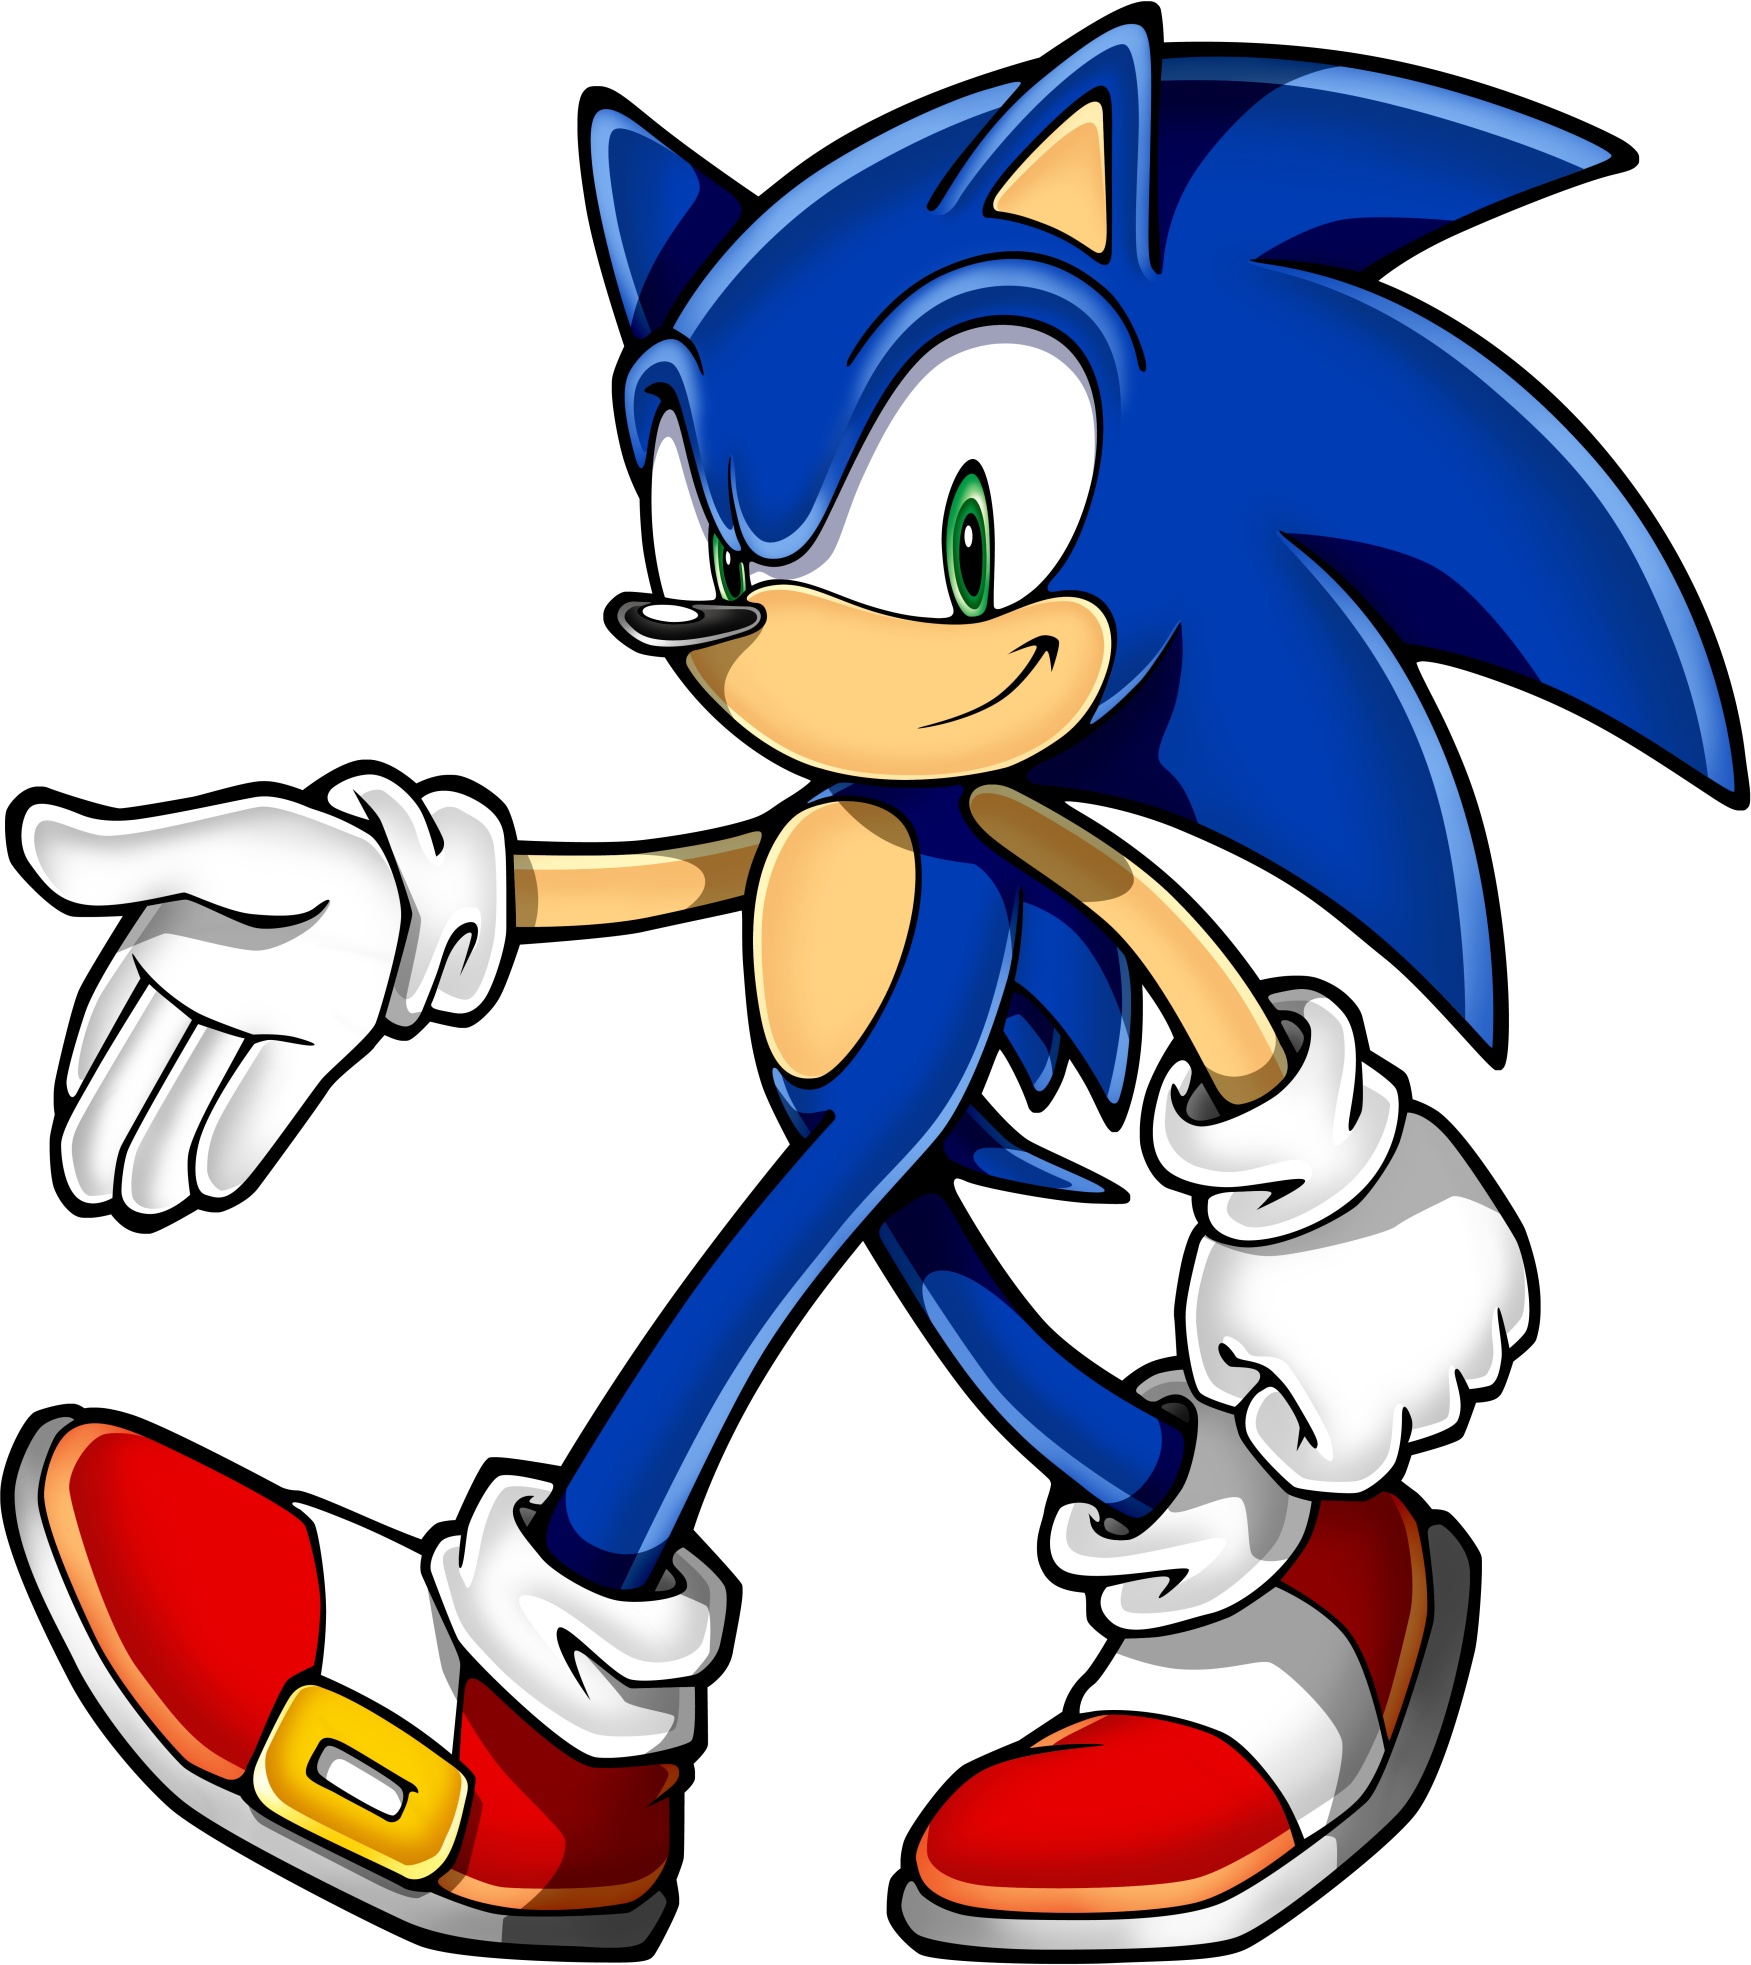 It is a photo of Stupendous Sonic the Hedgehog Galleries